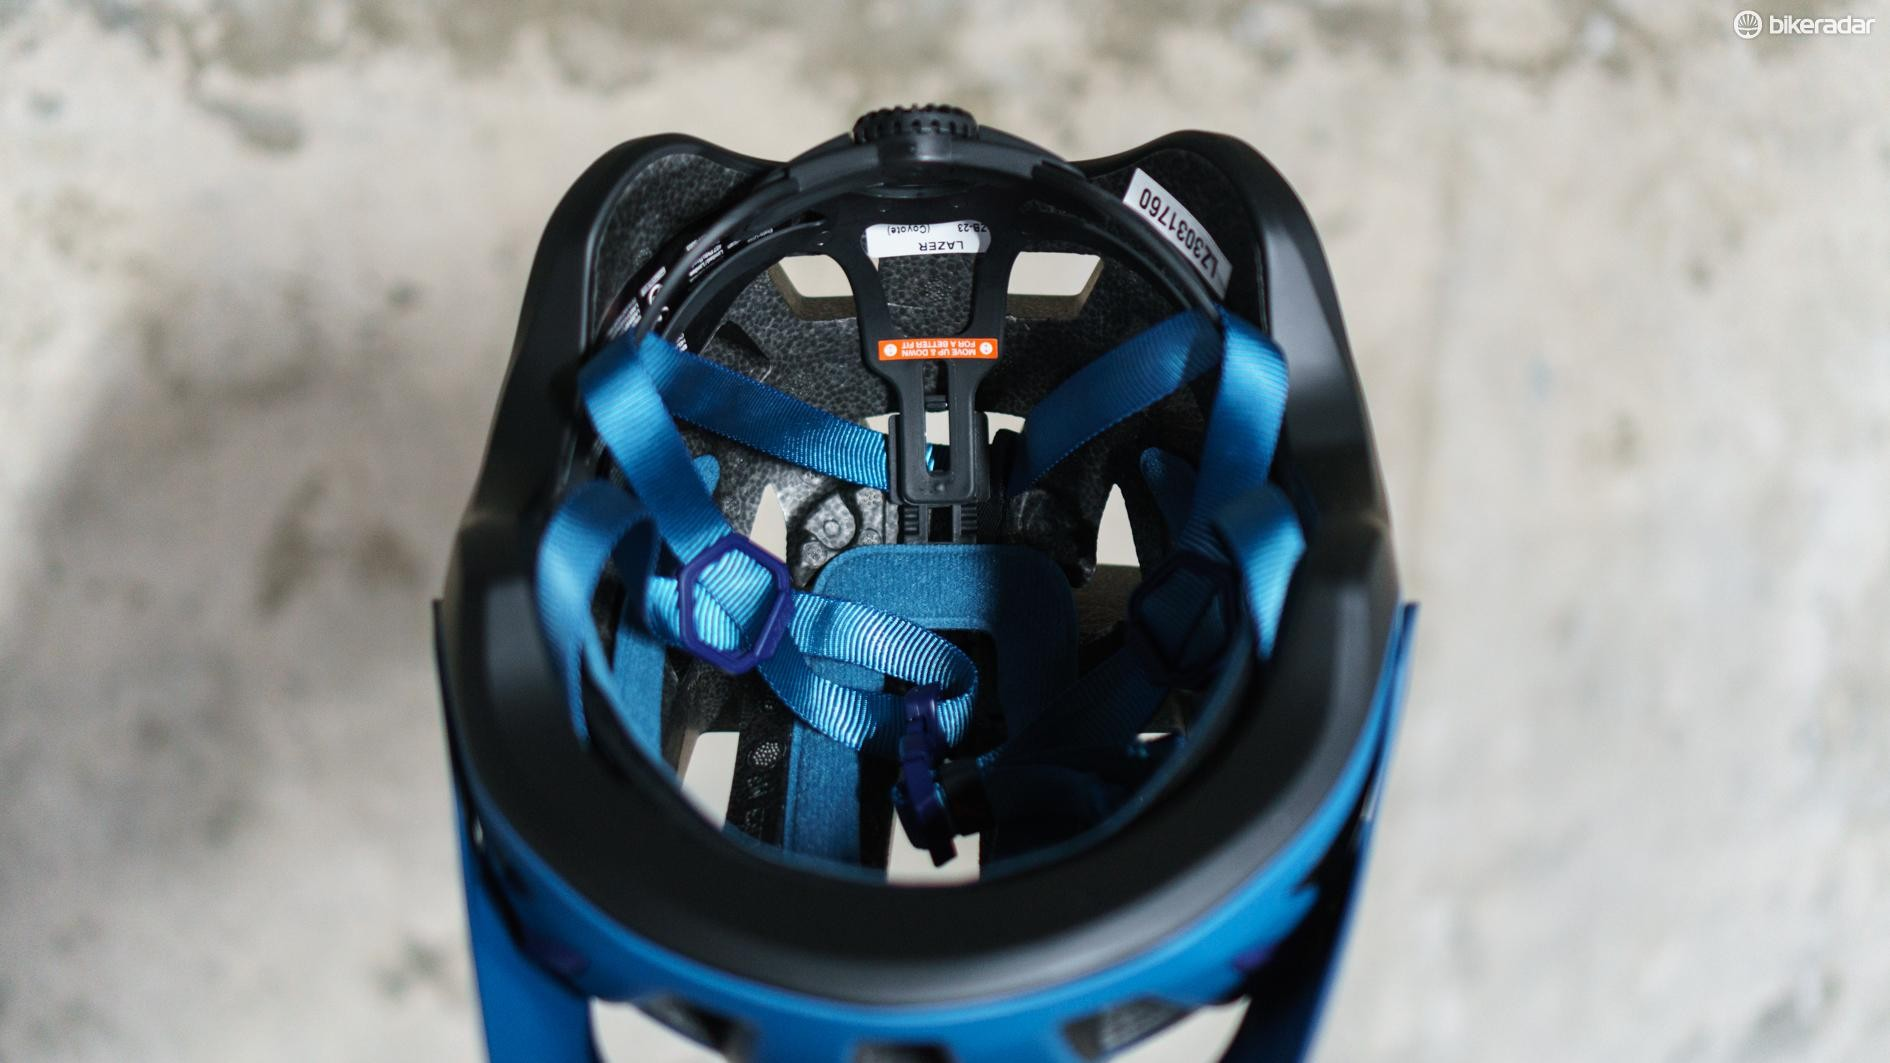 The helmet features more adjustability than usual for a cheaper helmet